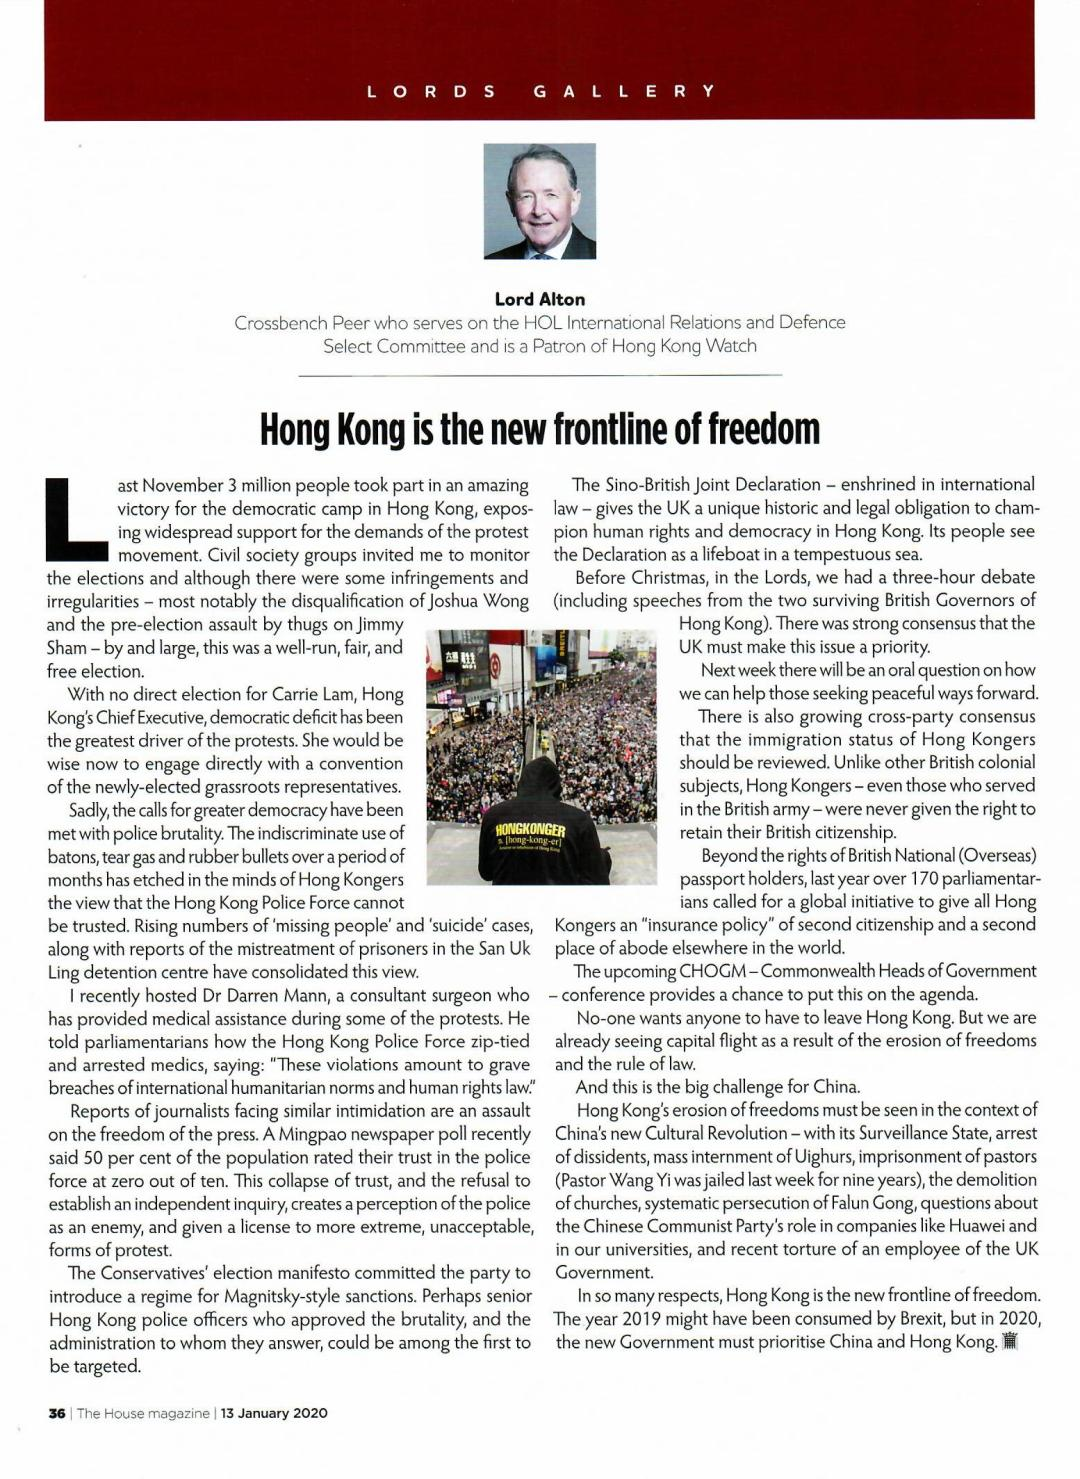 House Magazine Hong Kong the Frontline of Freedom Jan 14 2020